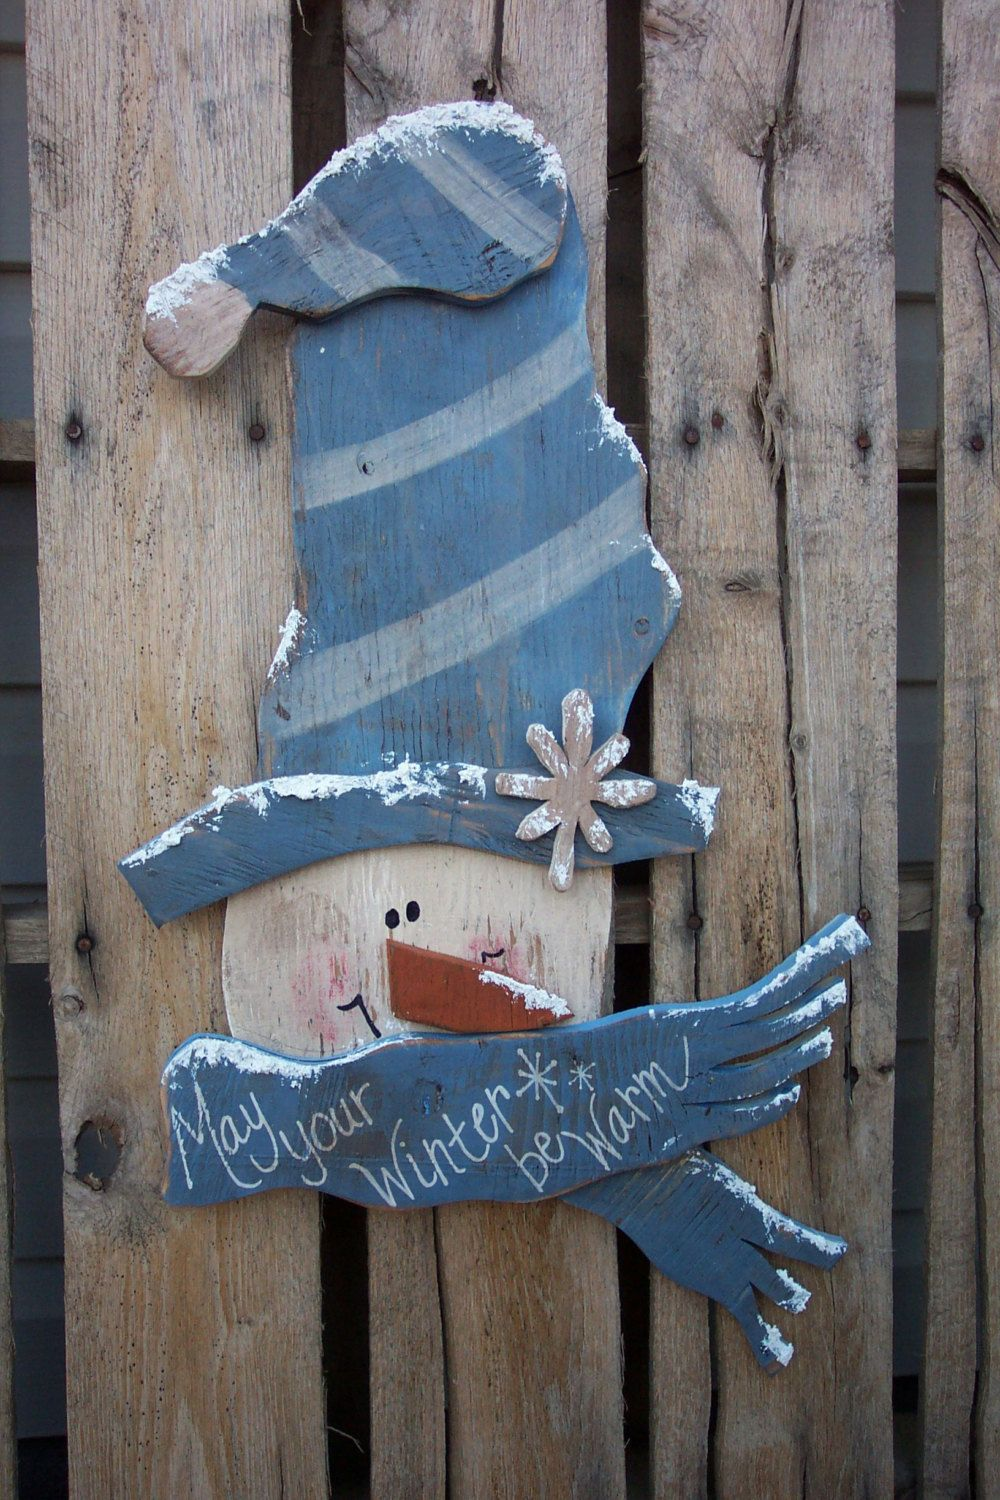 Winter Greetings Snowman Wood Craft Pattern for Winter and Christmas